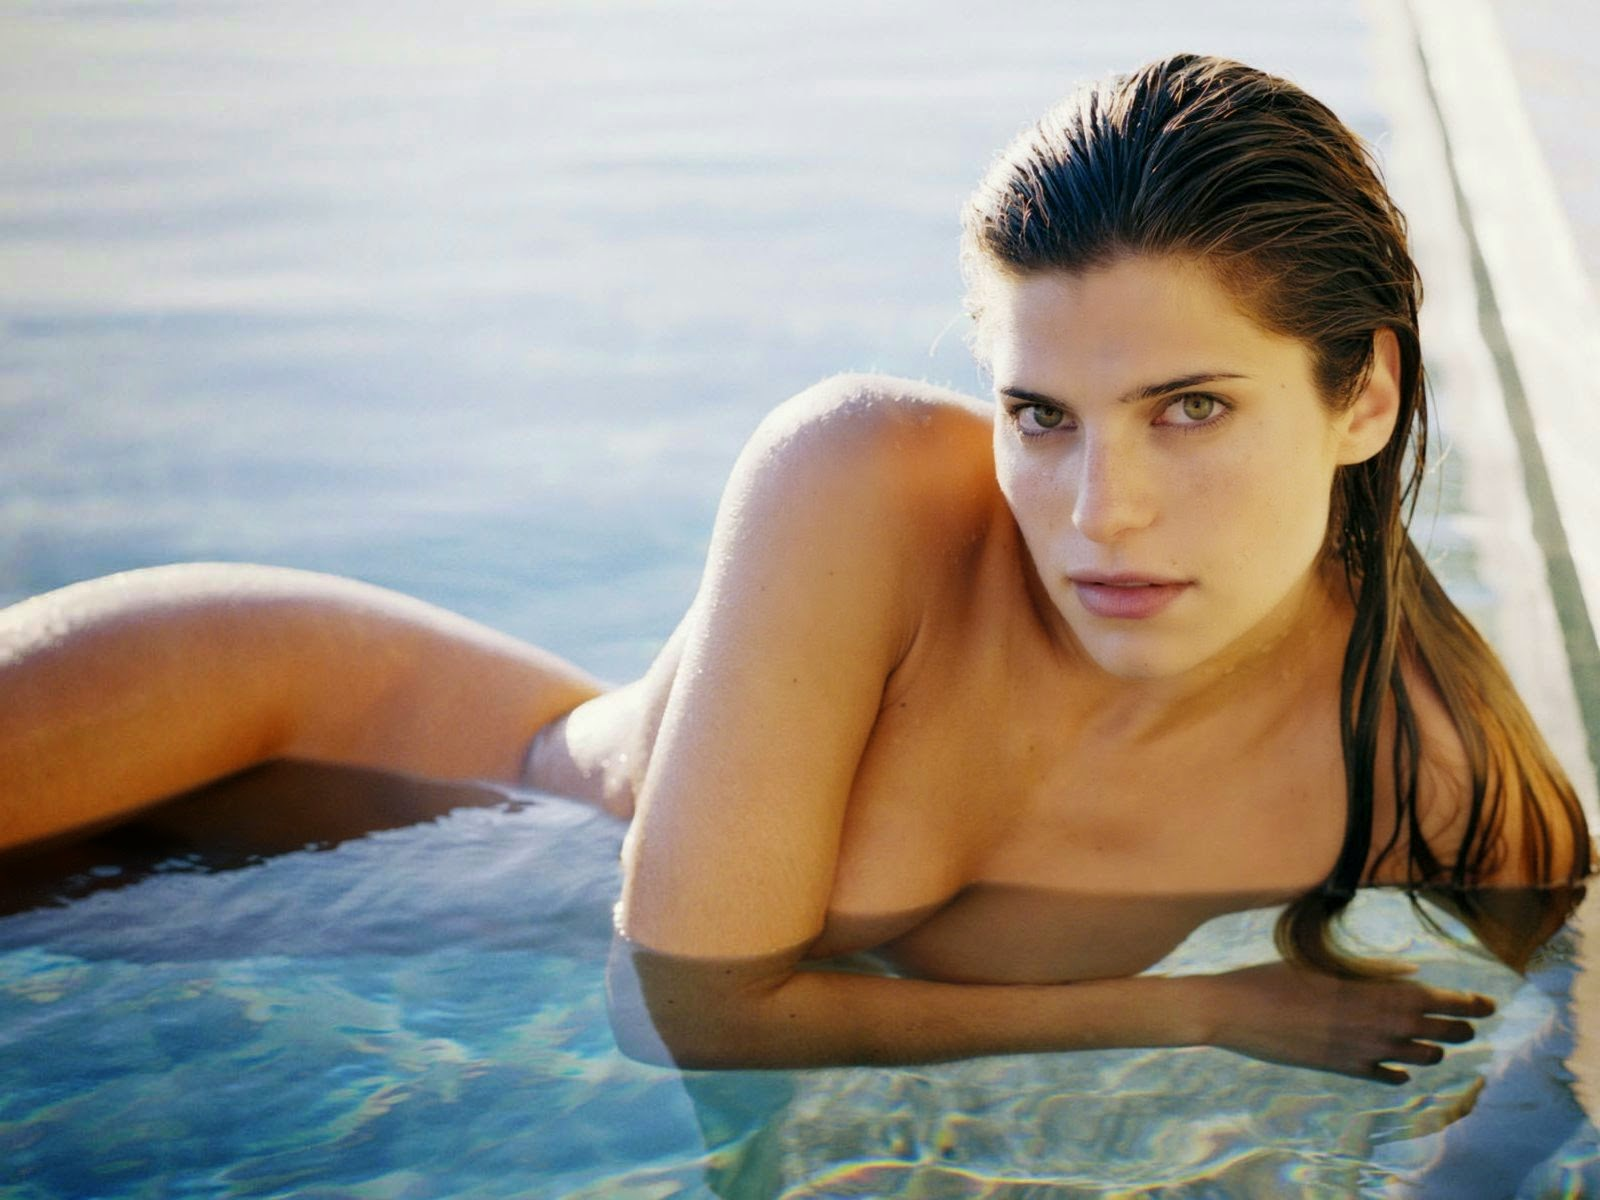 Lake bell nude movie actress